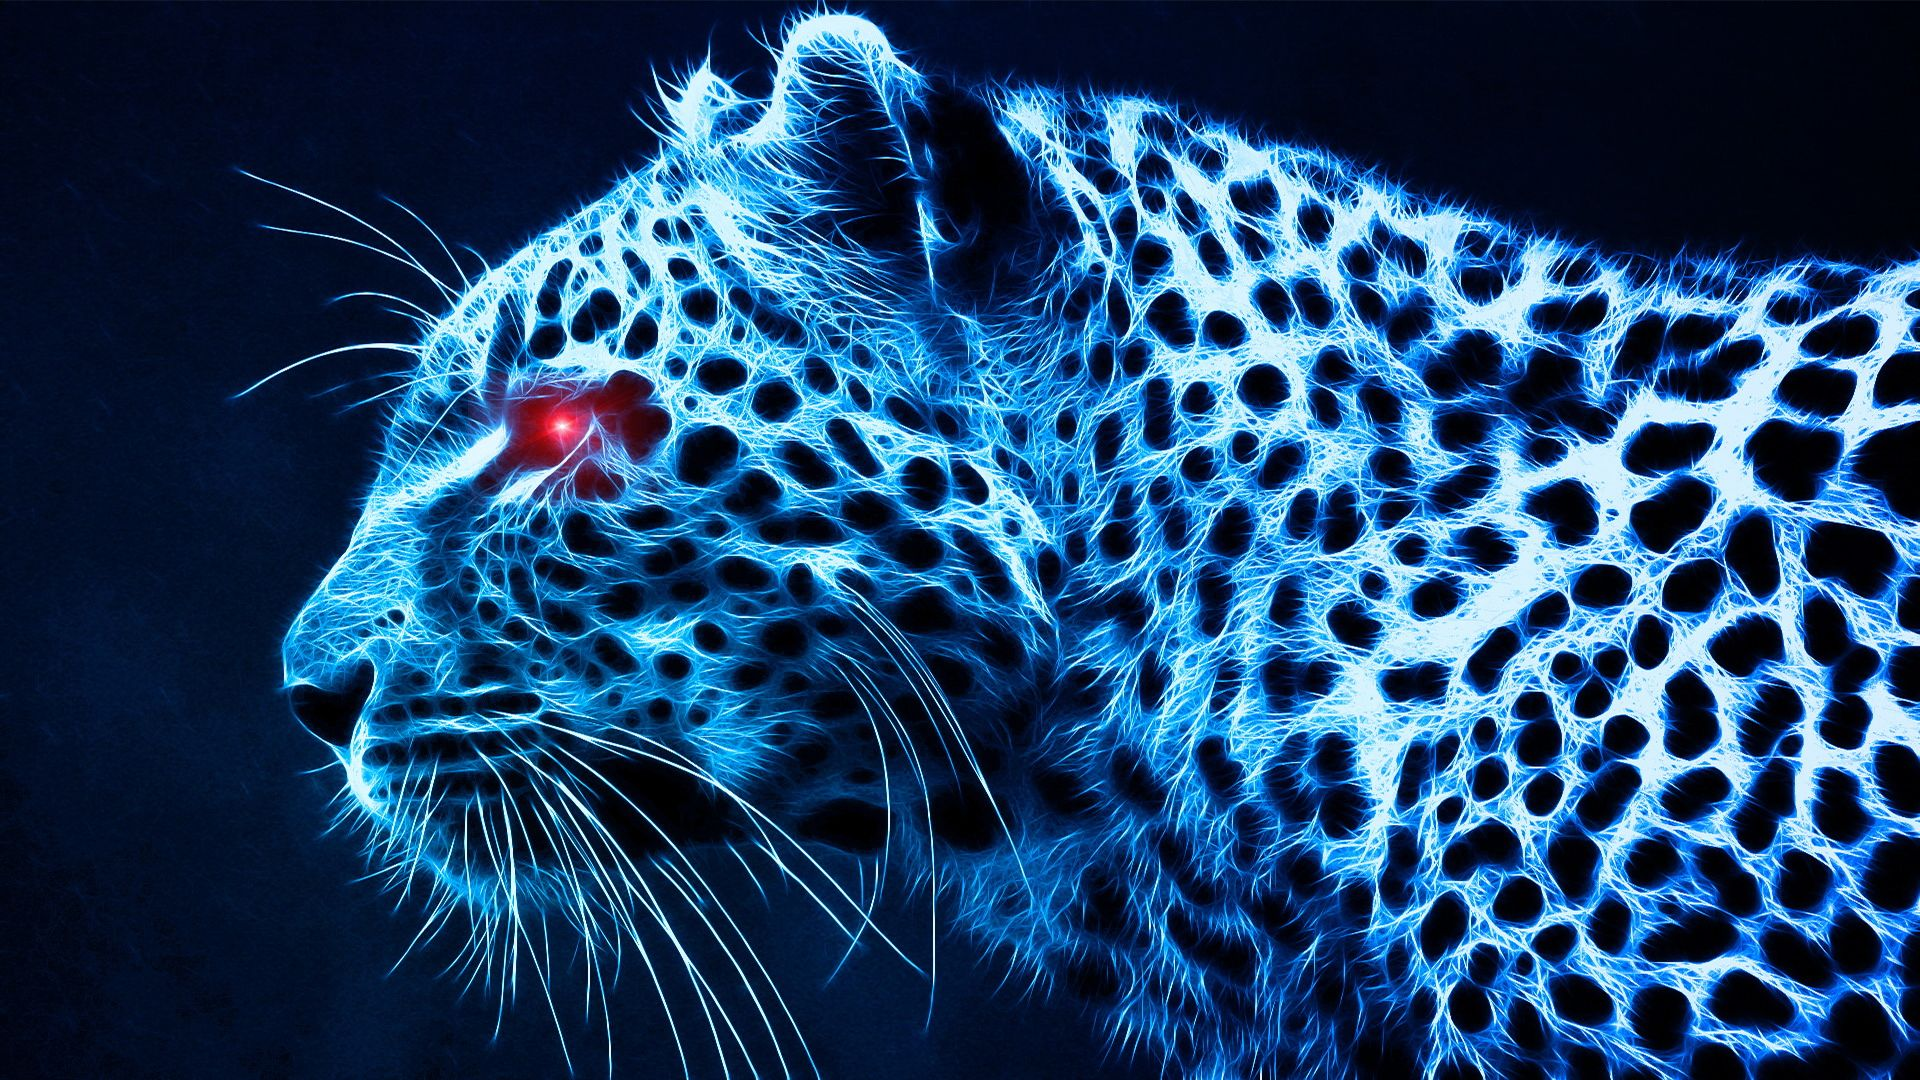 Cheetah Wallpapers Free Download Page 1 Leopard Wallpaper Tiger Wallpaper Cheetah Wallpaper